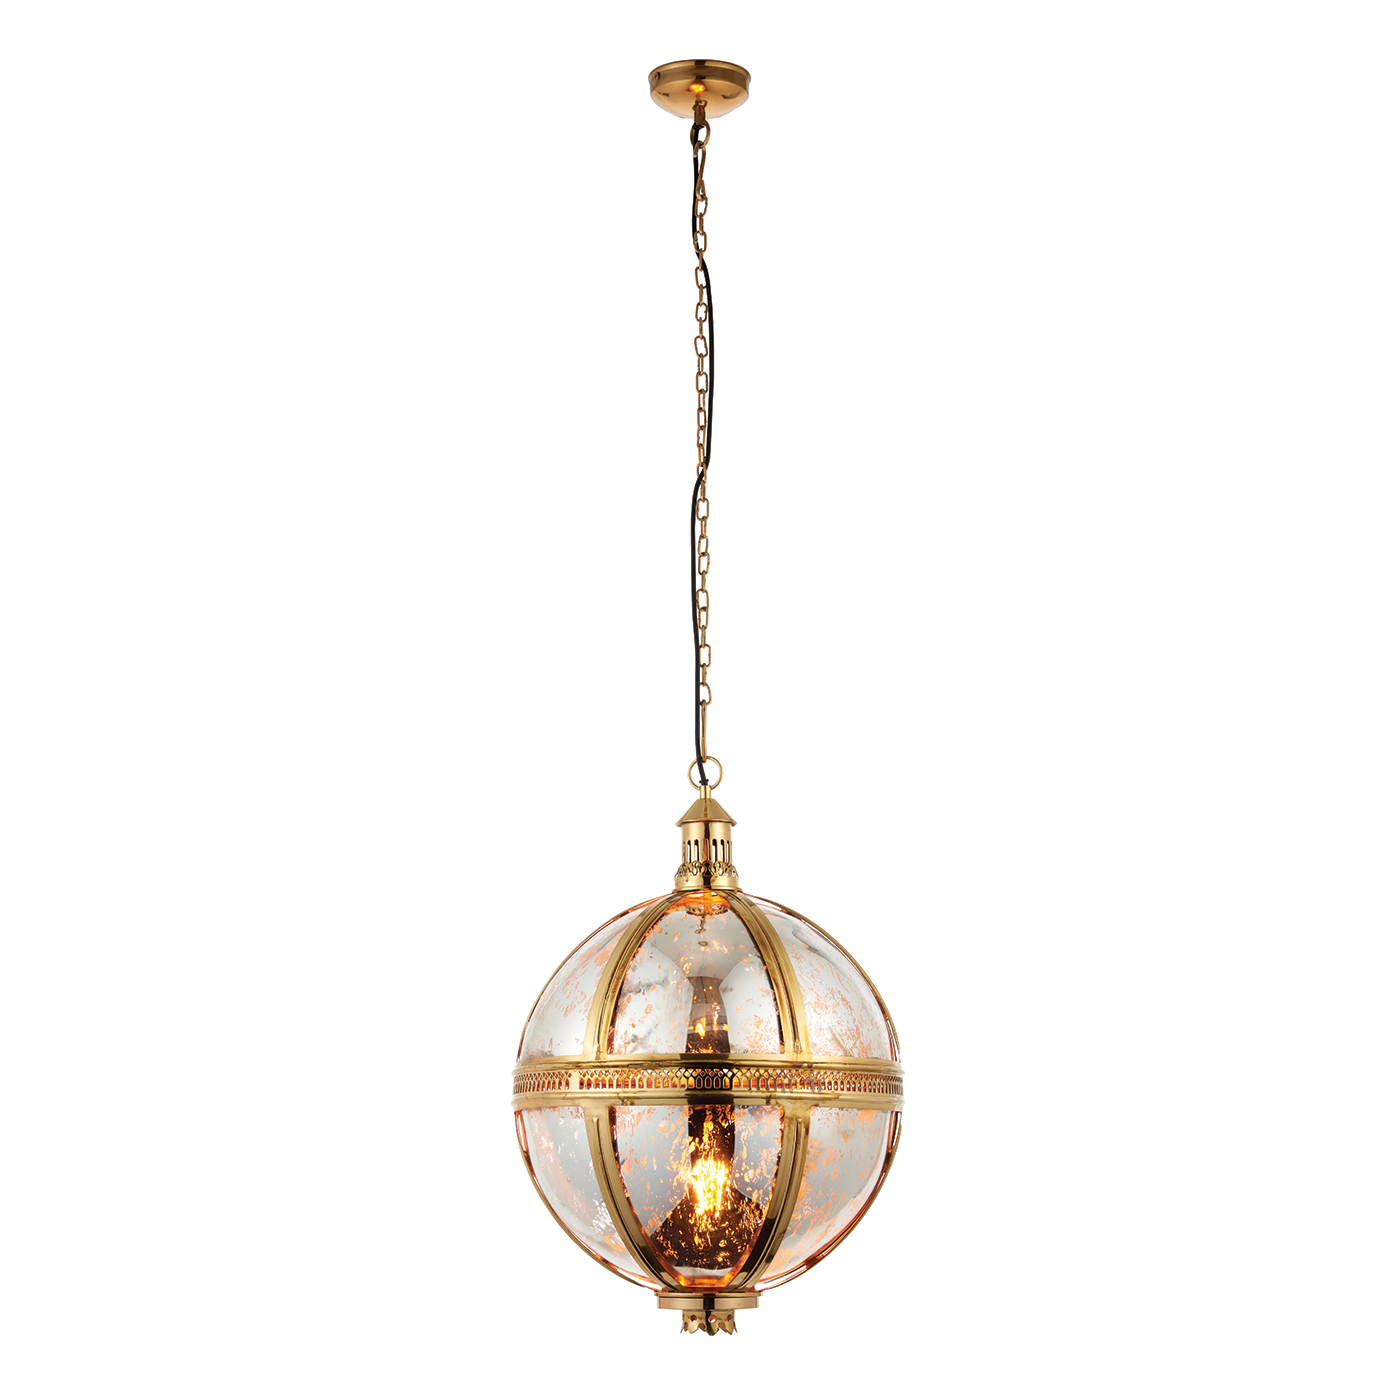 Endon Vienna 410mm pendant 40W Solid brass & mercury glass